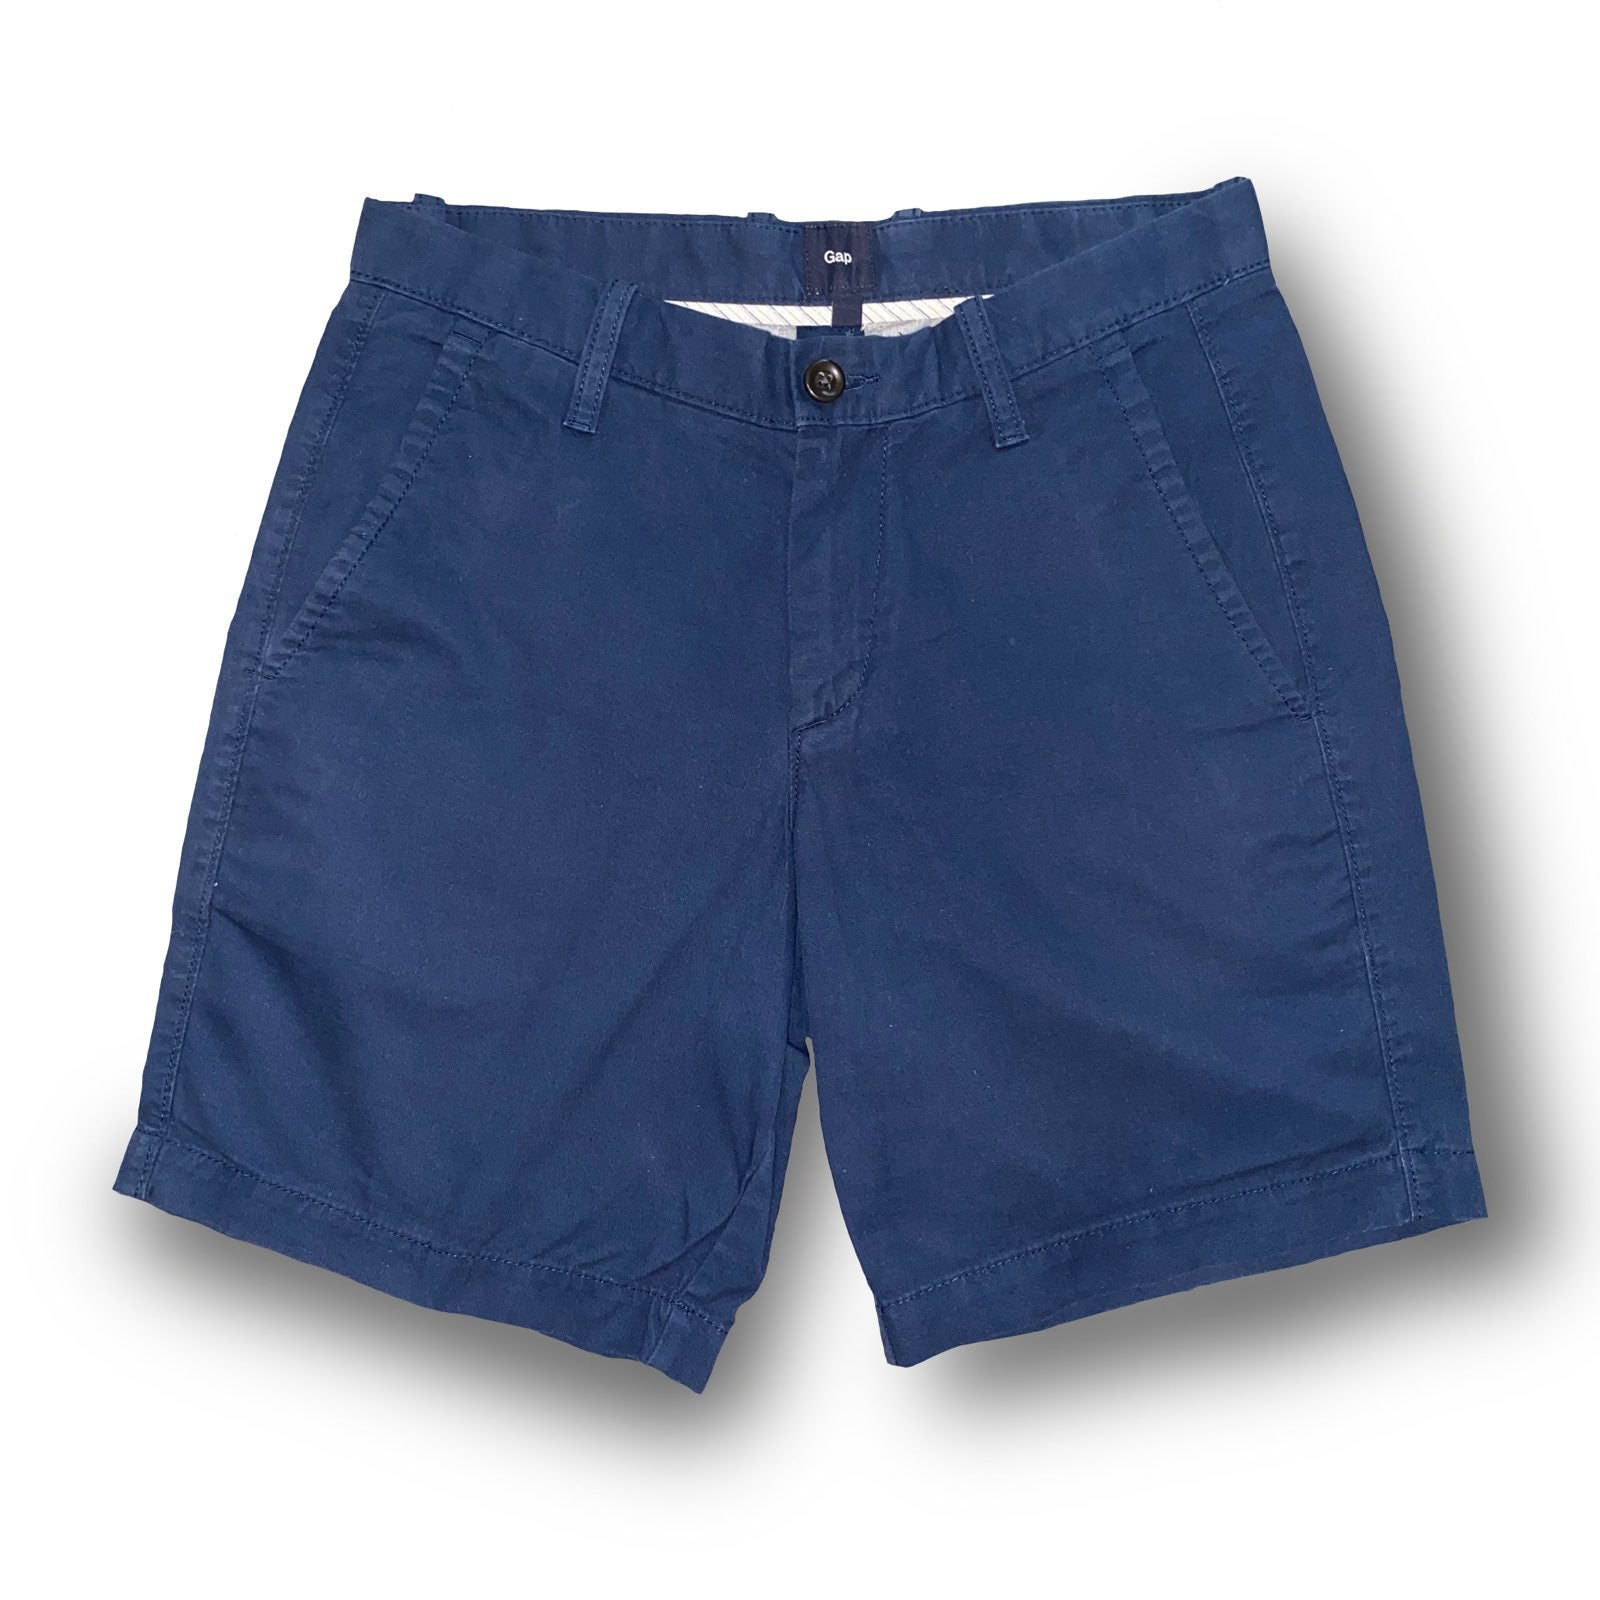 Gap Men's Navy Shorts. Size 28